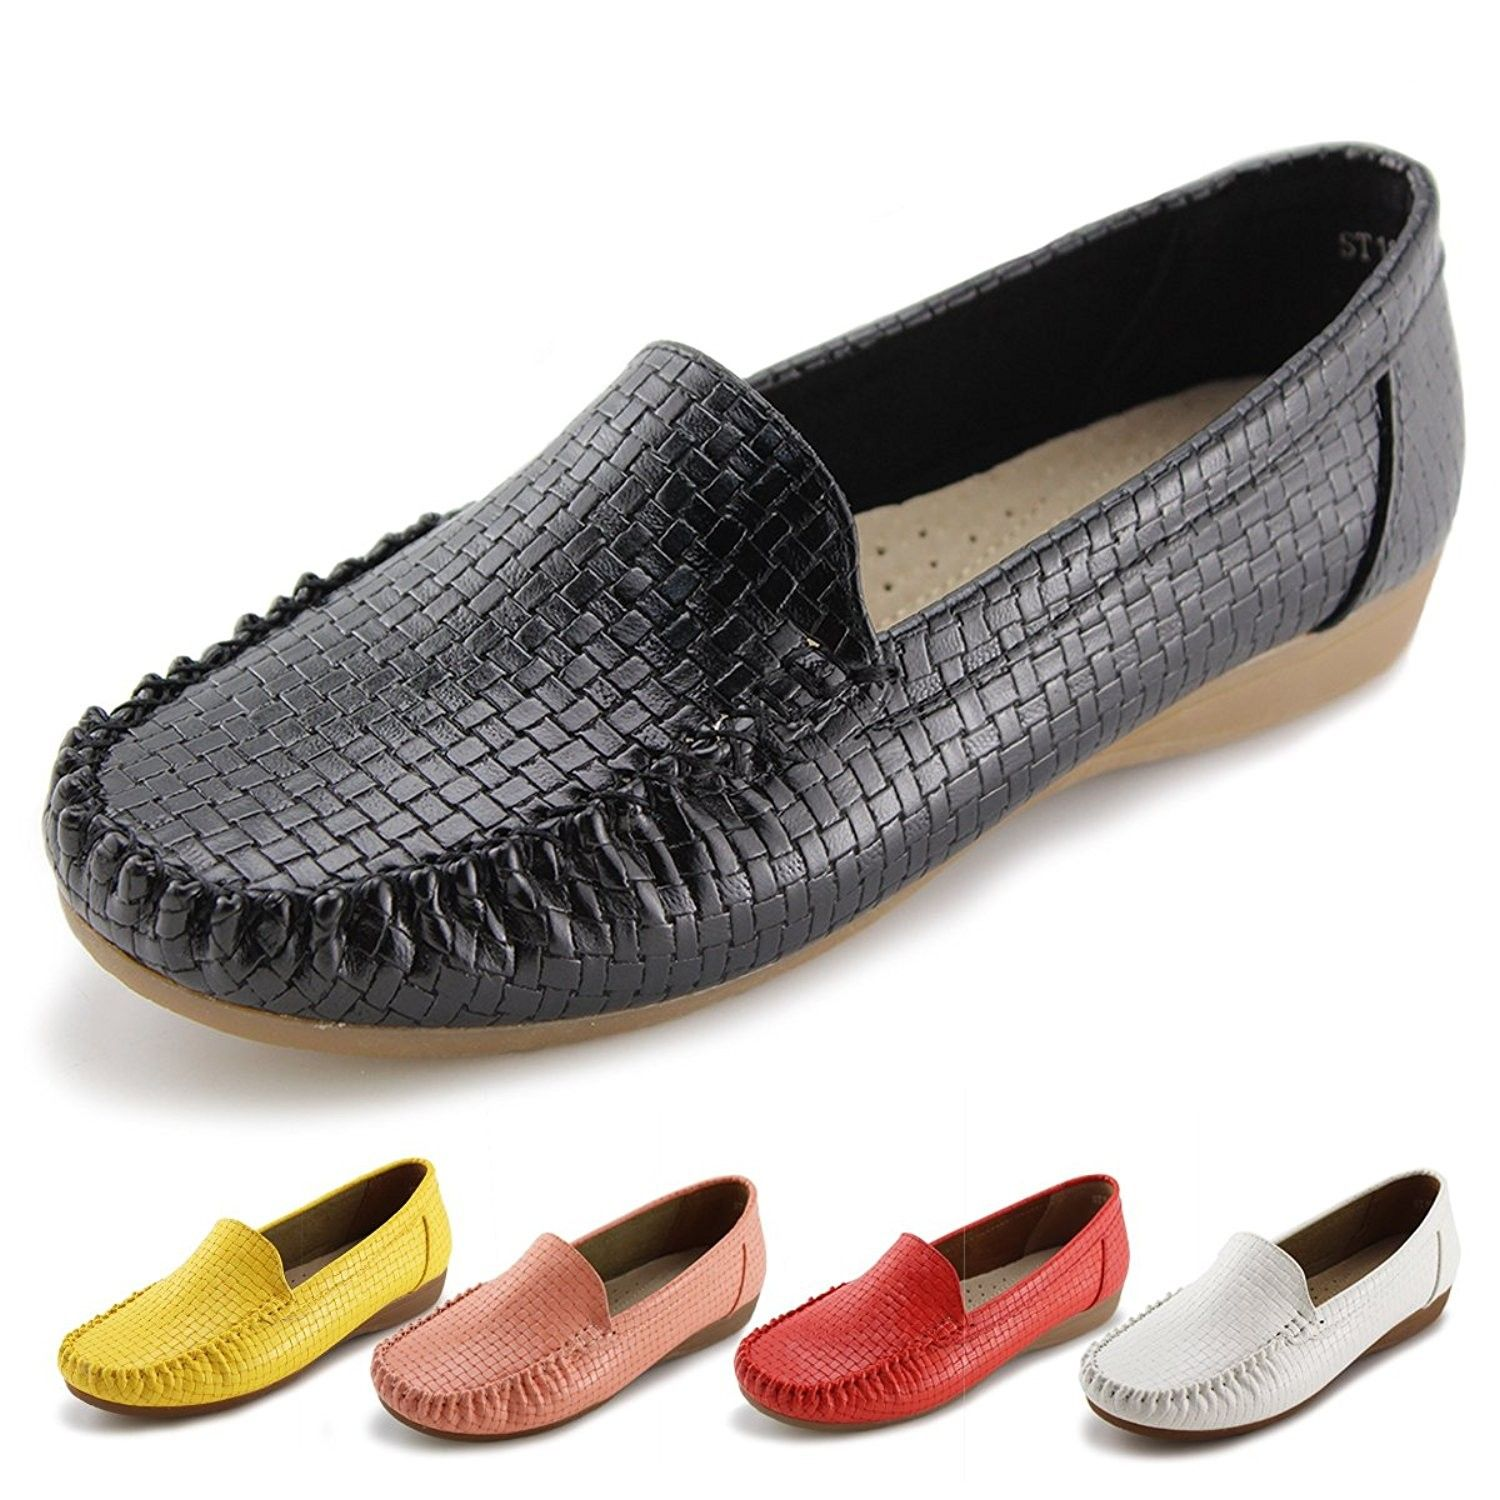 Women's Shoes, Loafers & Slip-Ons, Women's Slip-On Loafers Flat Casual